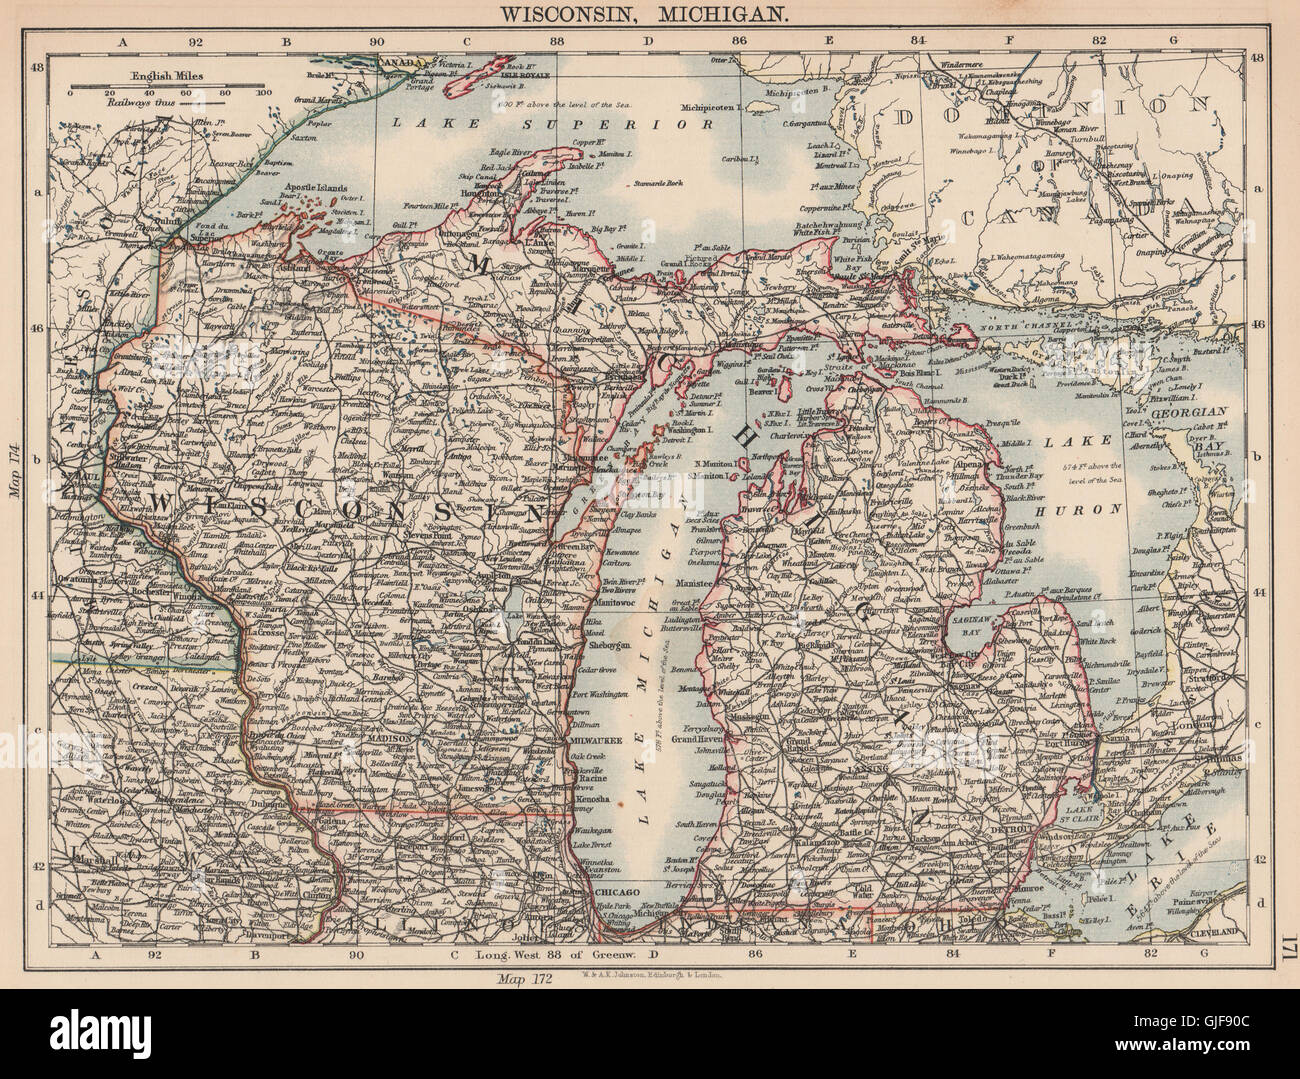 USA MIDWEST Wisconsin Michigan Great Lakes Superior Huron Stock - Map of wisconsin and michigan